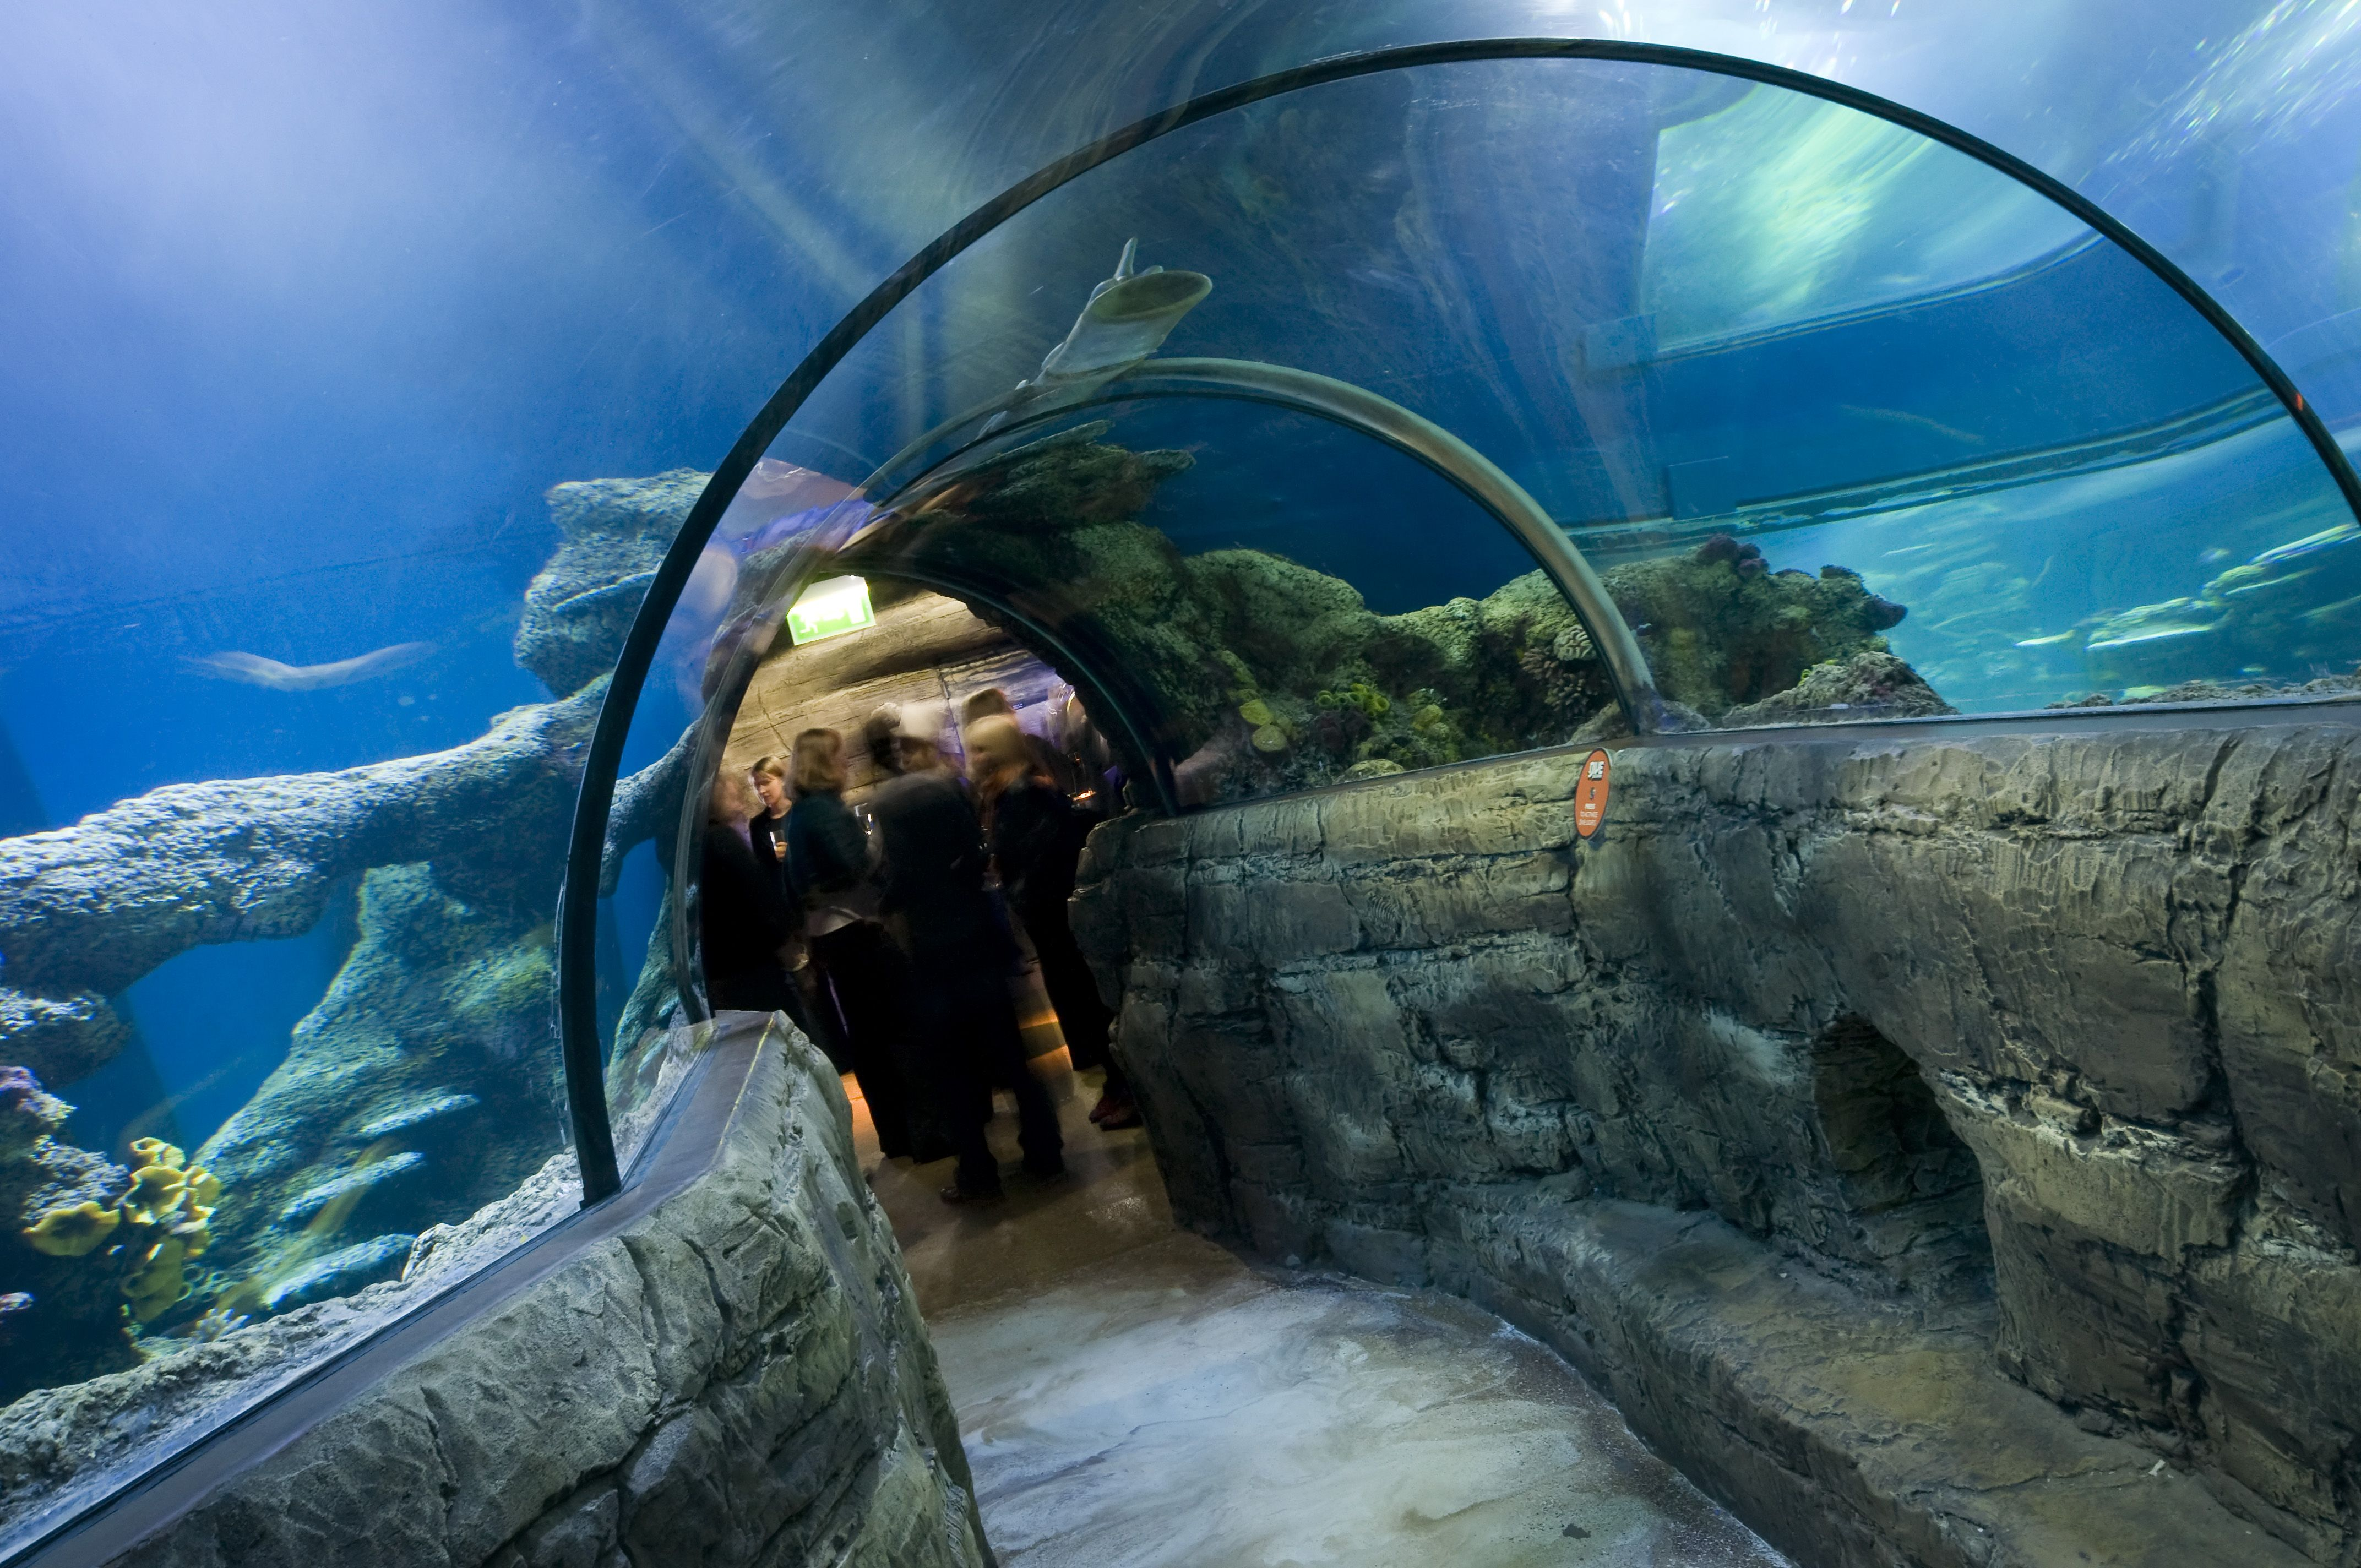 Delve Deep Into The Sea Life London Aquarium At A After Thailand Et Ticket Ocean World Only Adult Dark Event Where You Can Enjoy All Its Beauty Without Any Screaming Kids